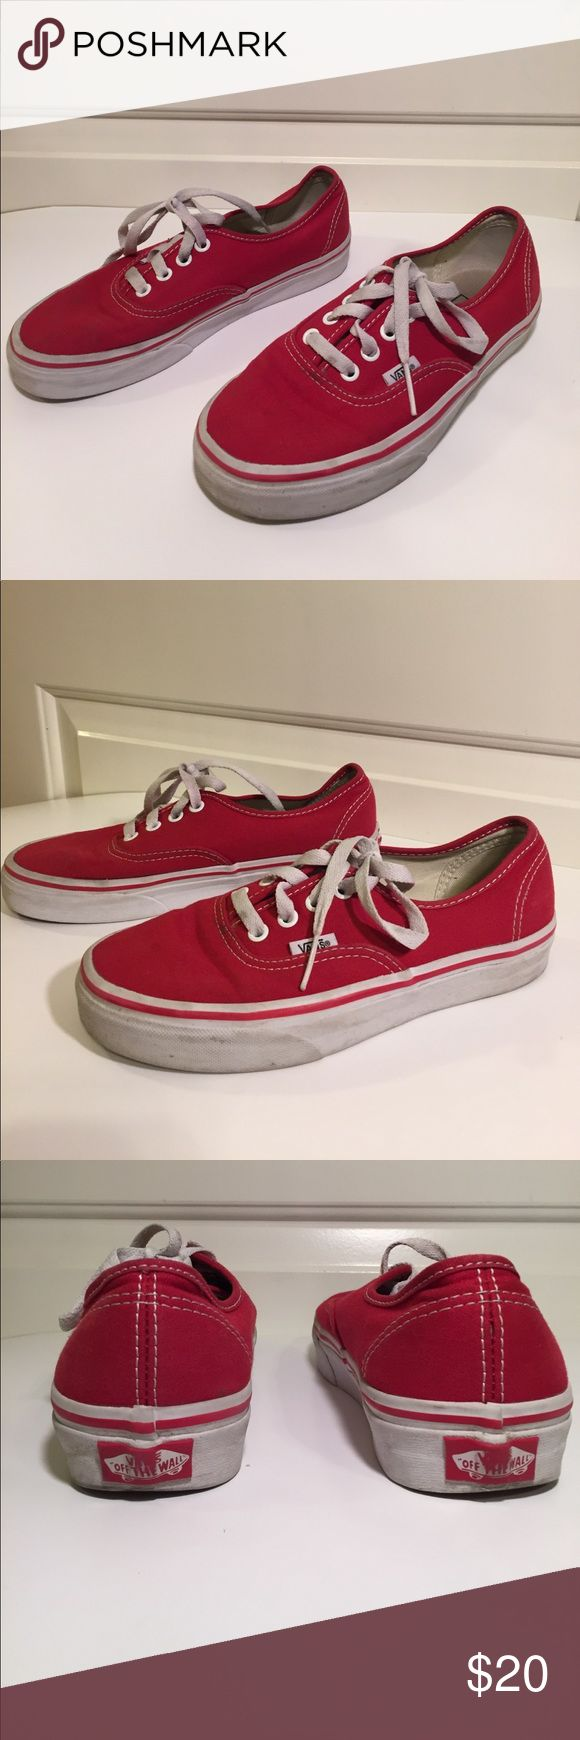 Vans Authentic Red Youth Size 6 Vans Authentic Red Size 6. Shoes show signs of wear but are still in fair condition. Vans Shoes Sneakers